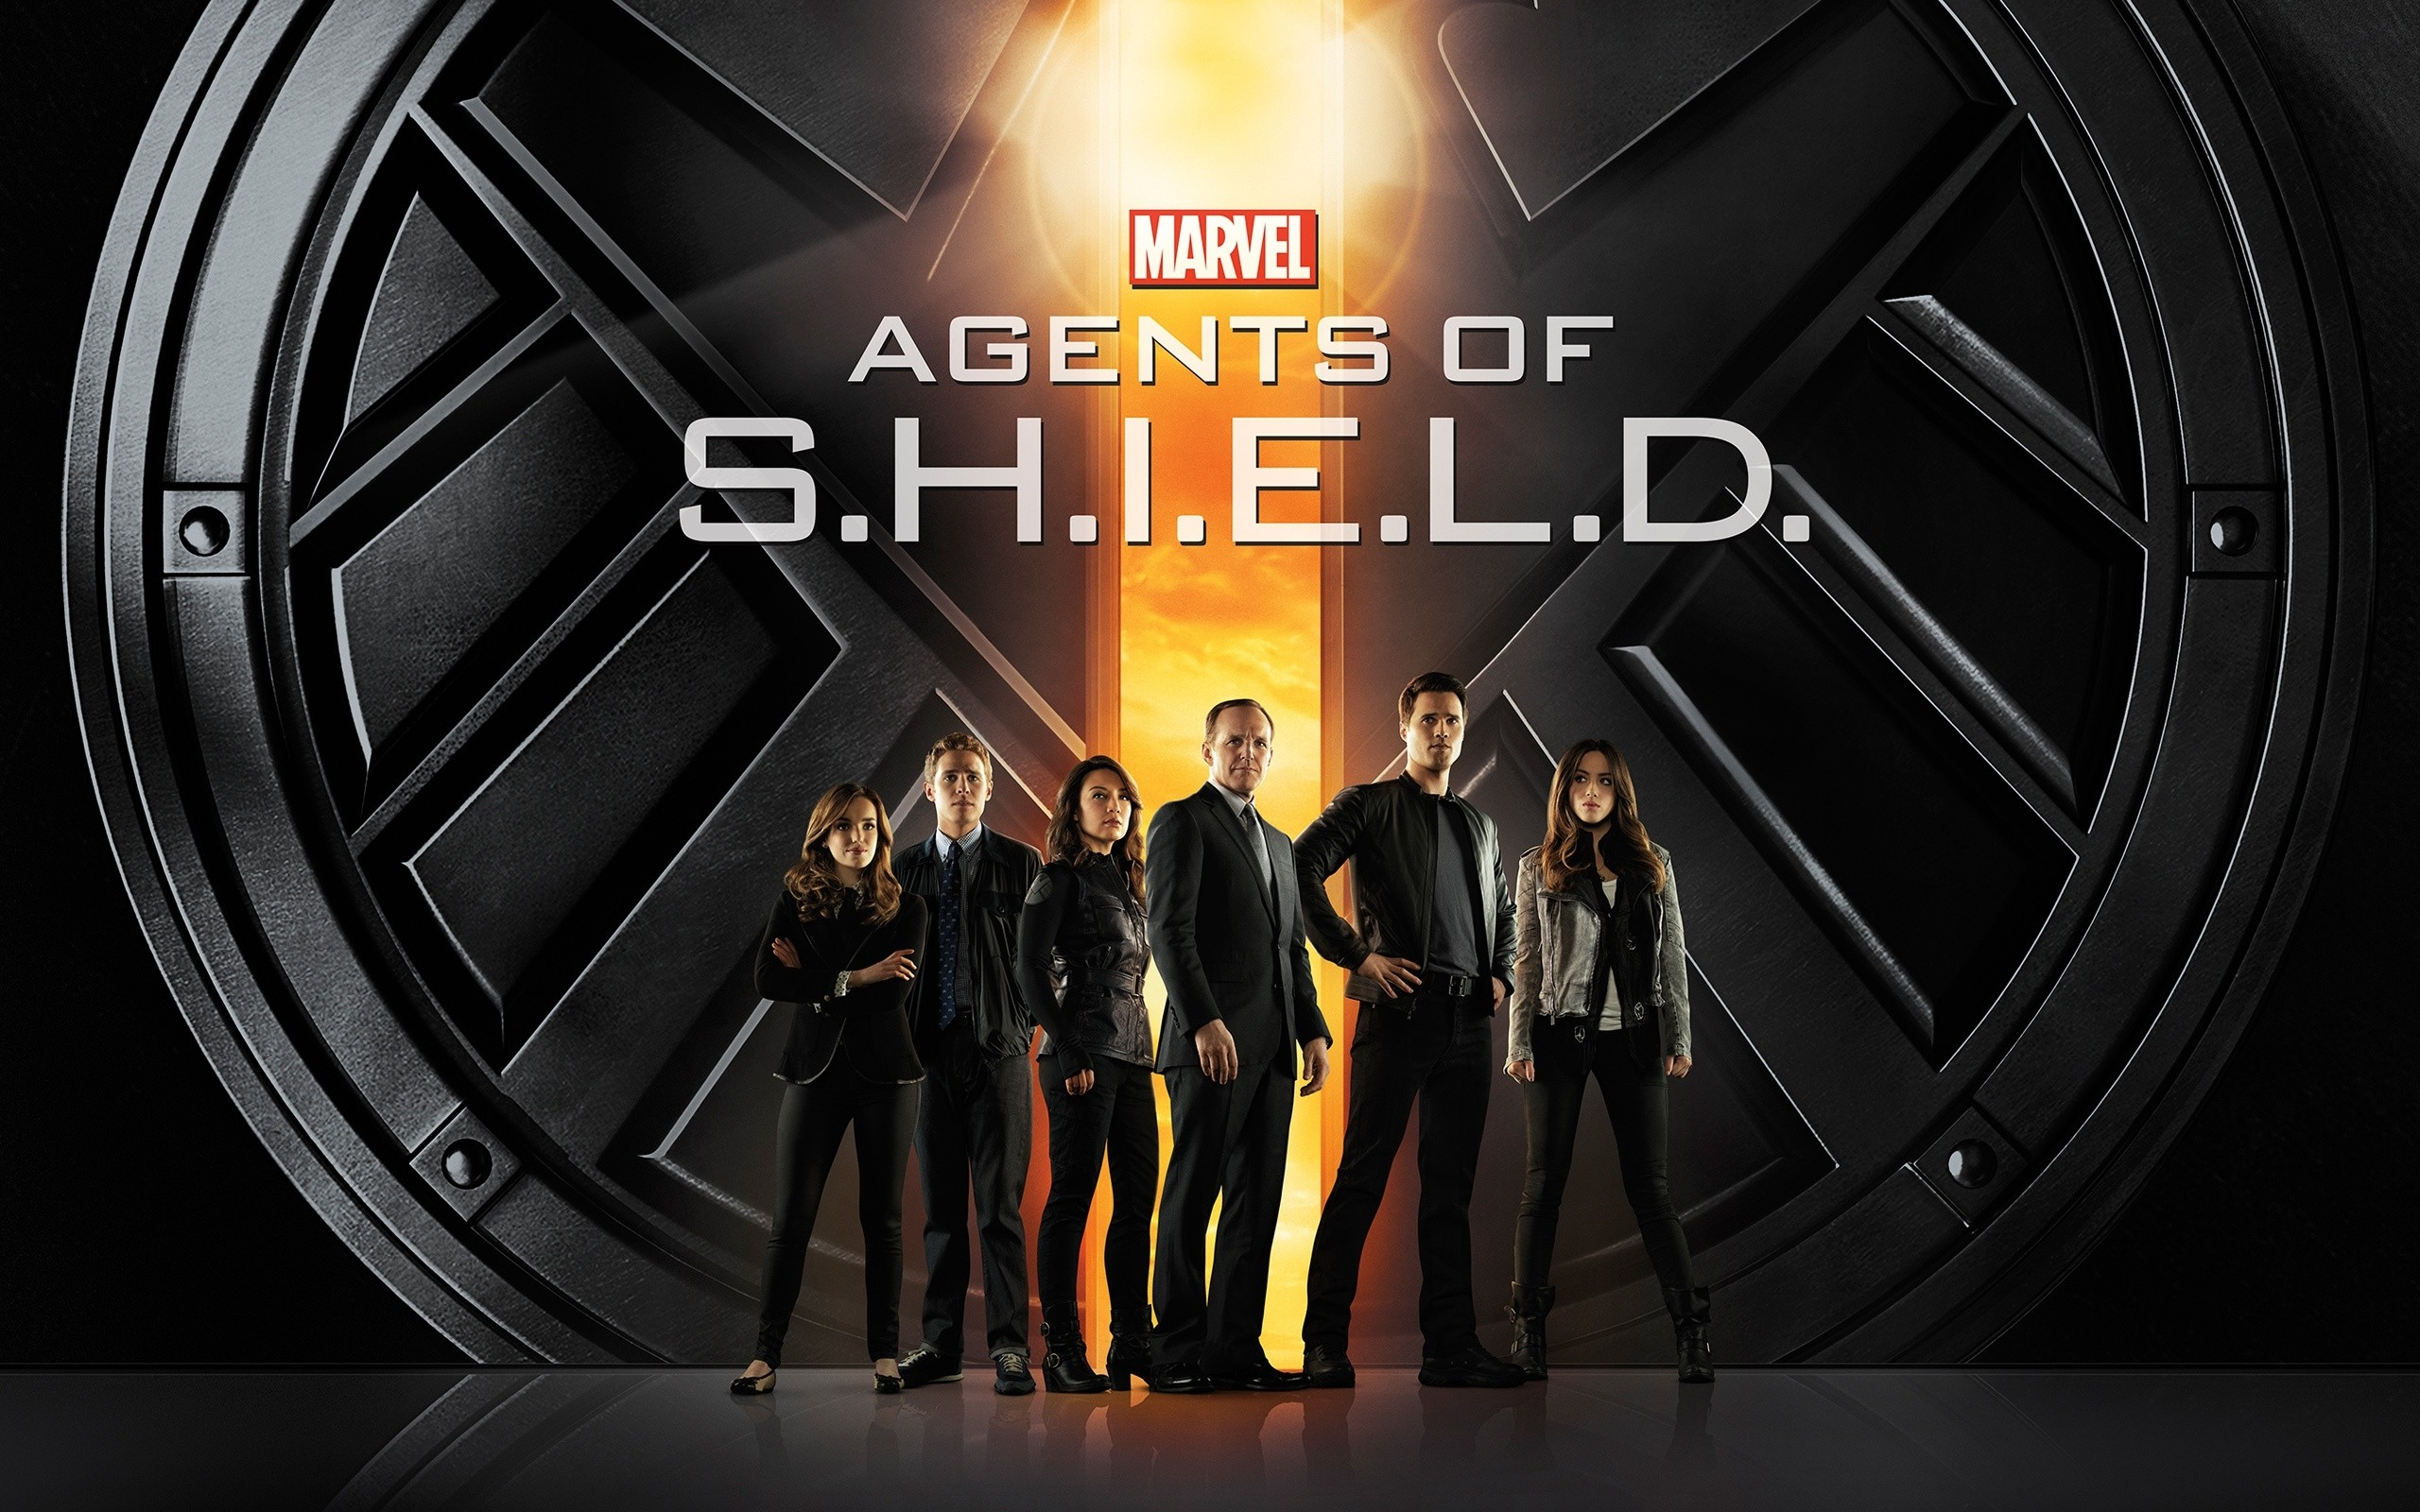 2560x1600 HD Wallpaper | Background Image ID:468535.  TV Show Marvel's  Agents of S.H.I.E.L.D.